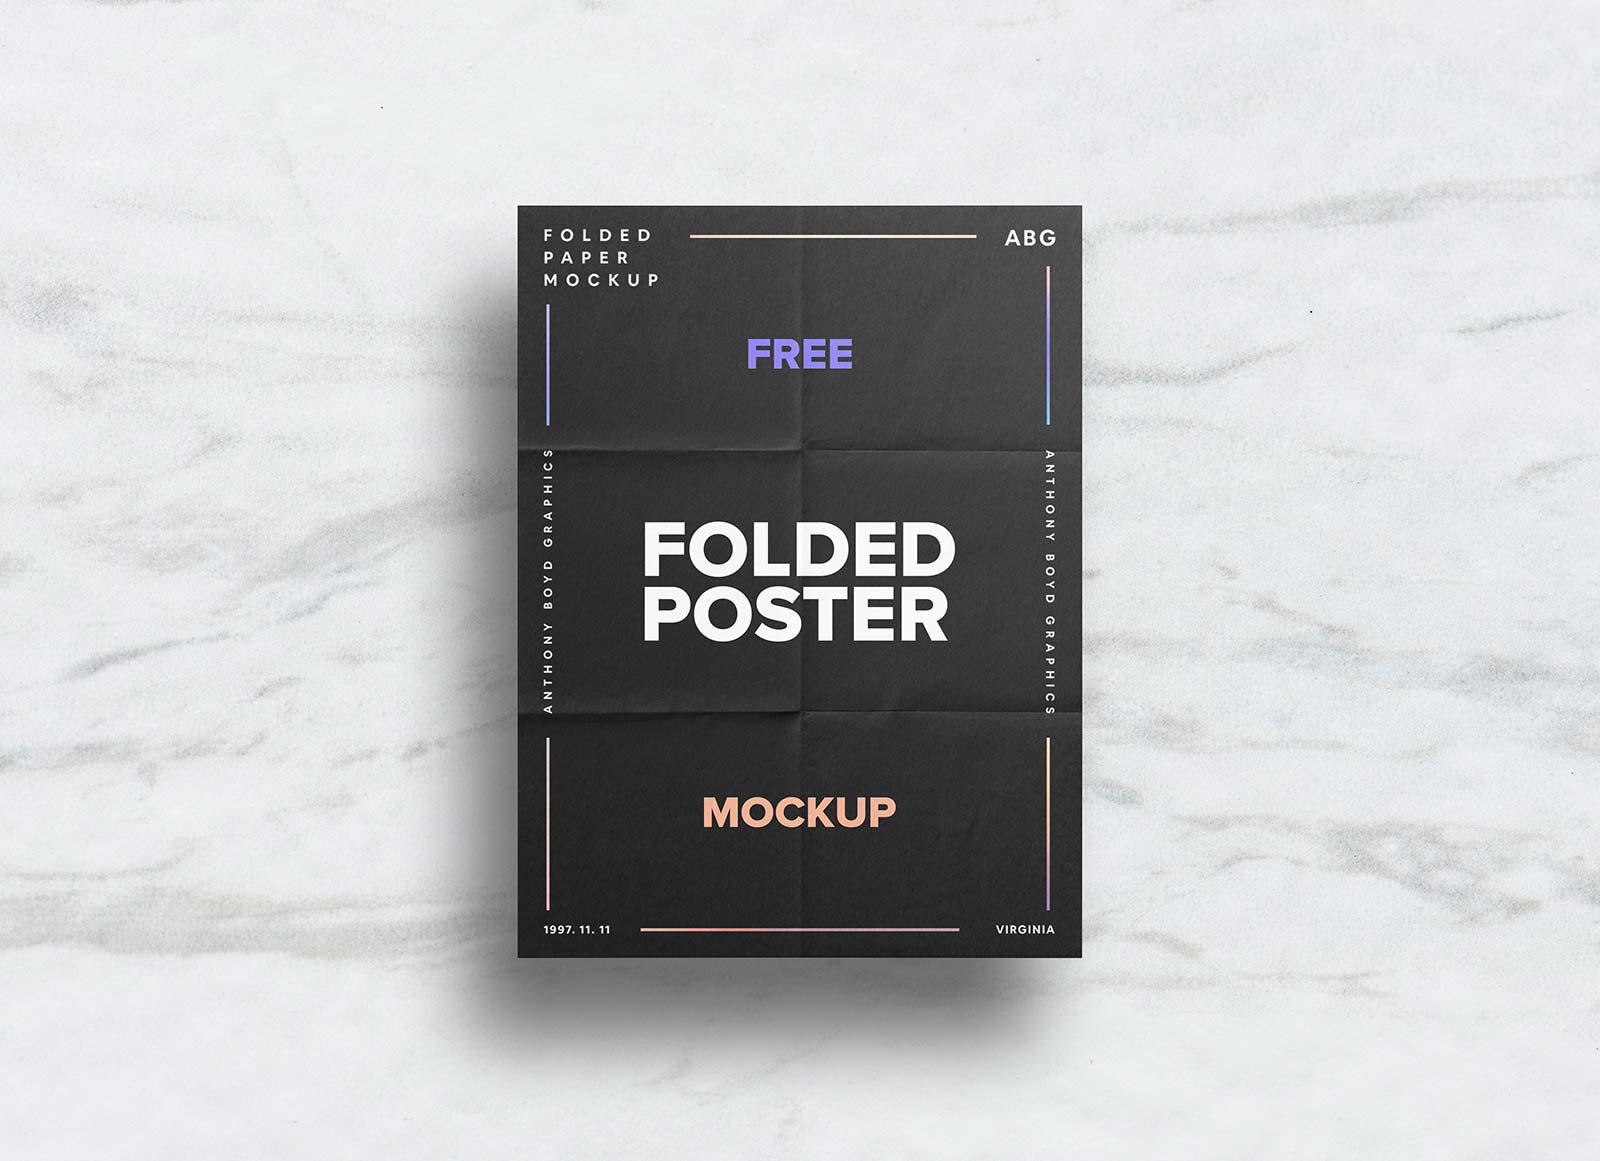 Free-Folded-Paper-Poster-Mockup-PSD